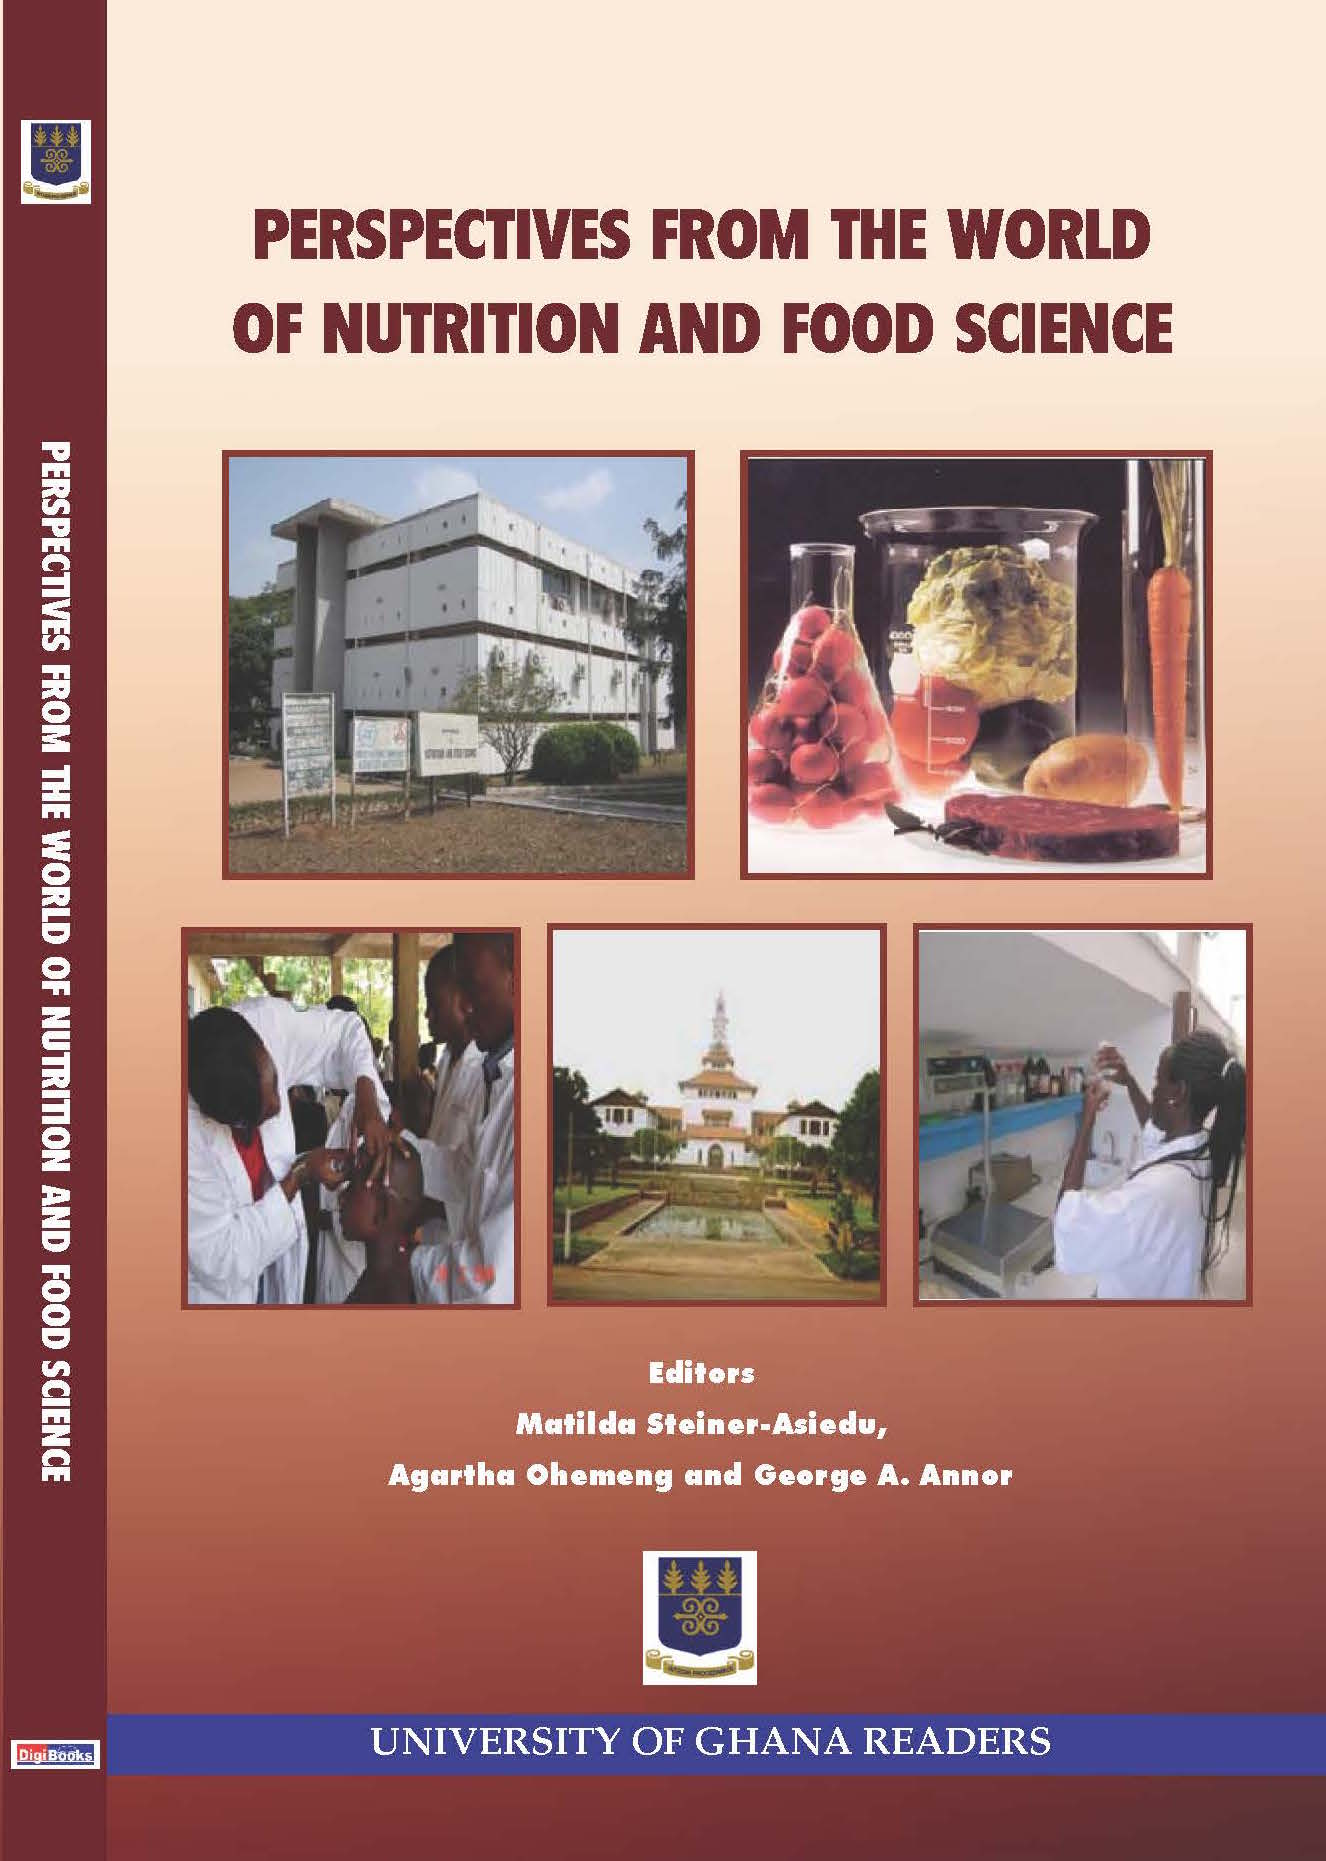 PERSPECTIVES FROM THE WORLD OF NUTRITION AND FOOD SCIENCE